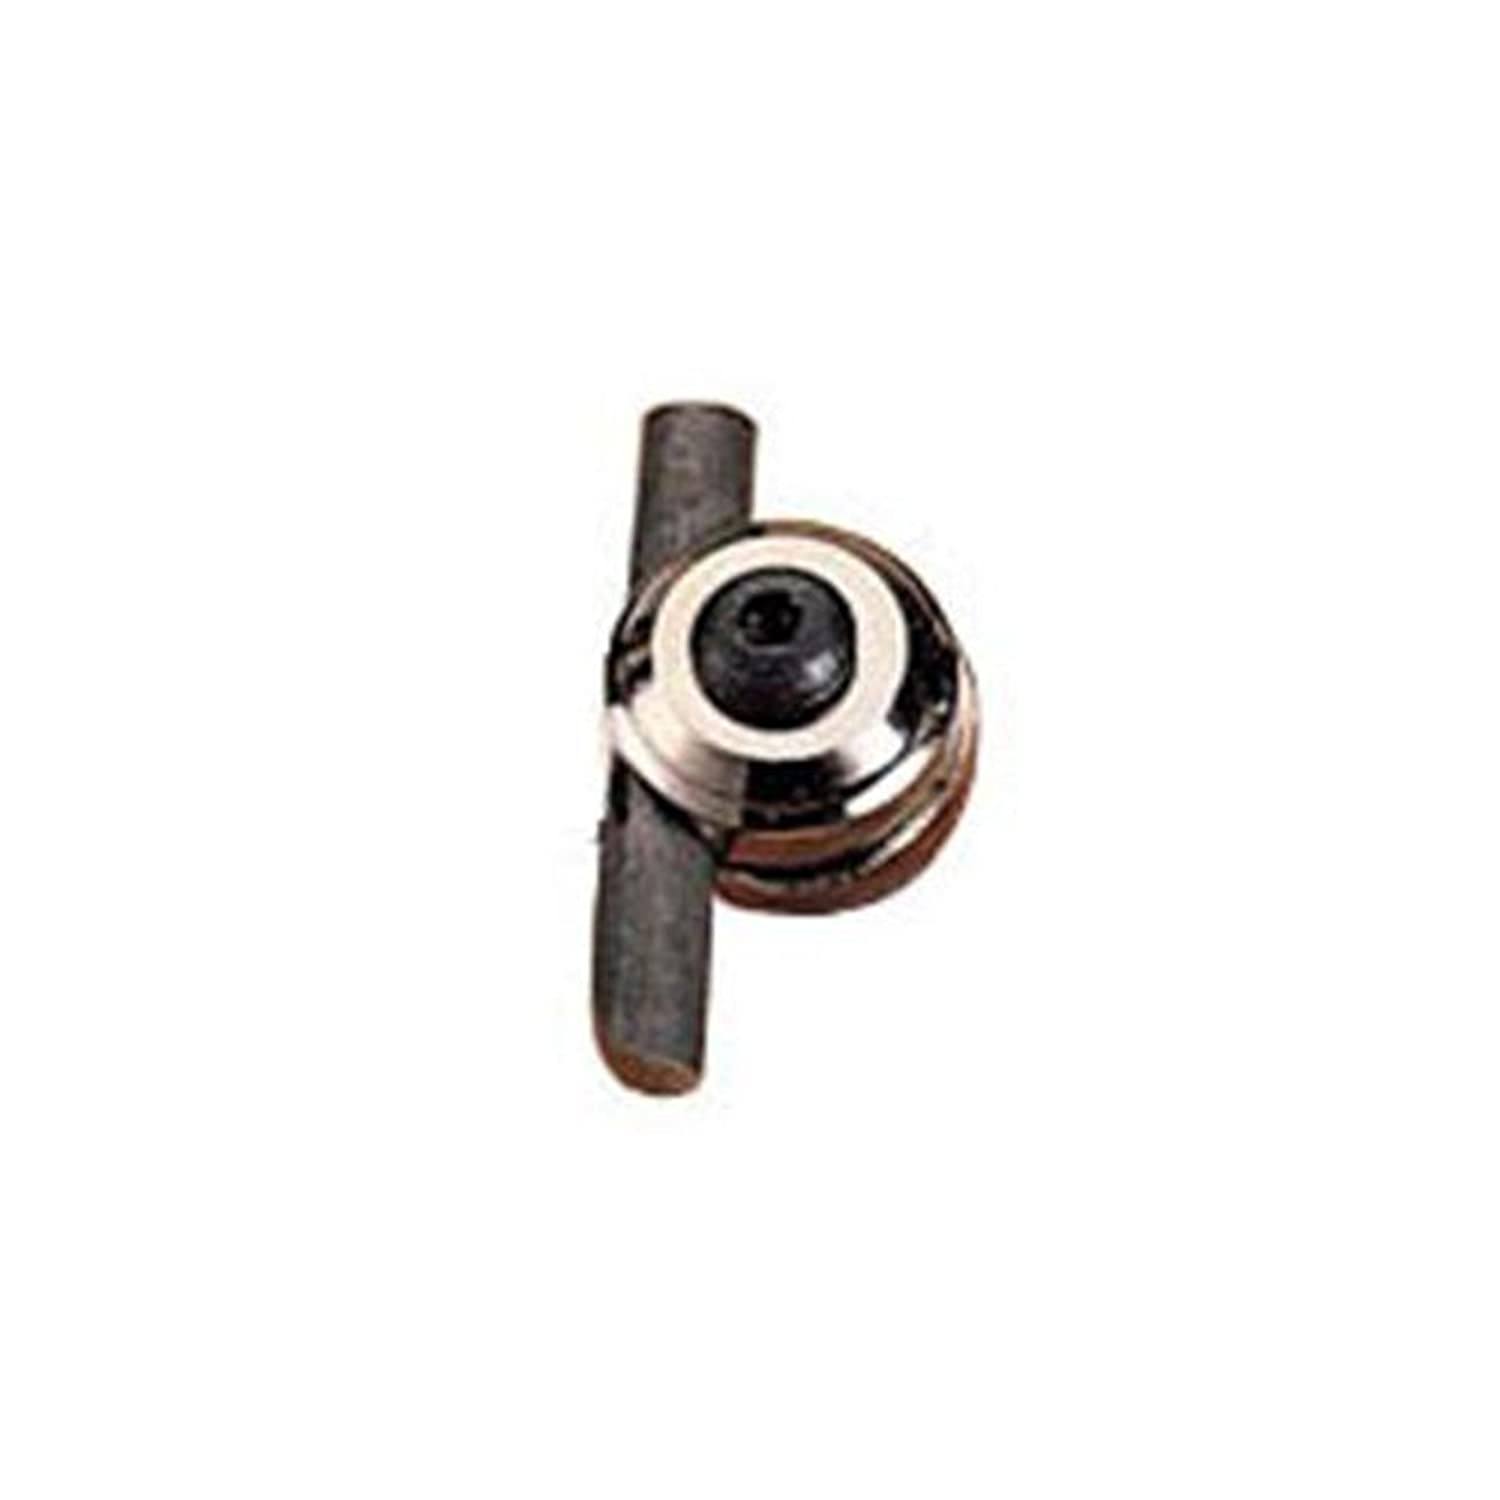 Robert Sorby H9084 Round End Swivel Tip for H9083